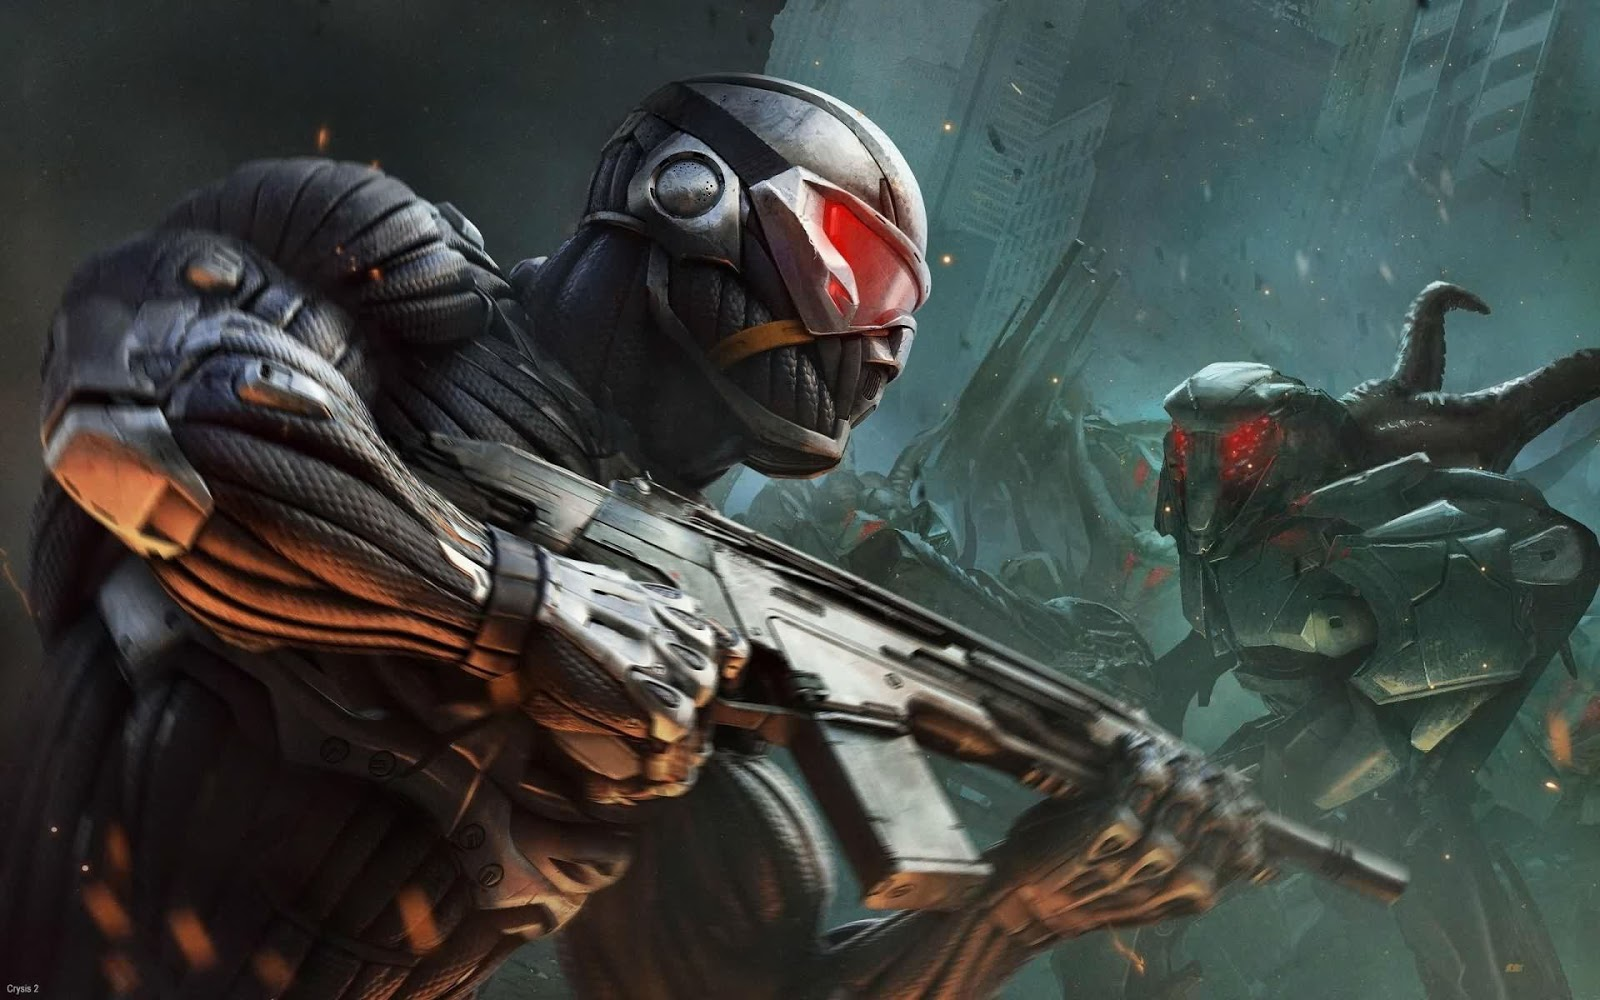 crysis 4 wallpaper hd - photo #37